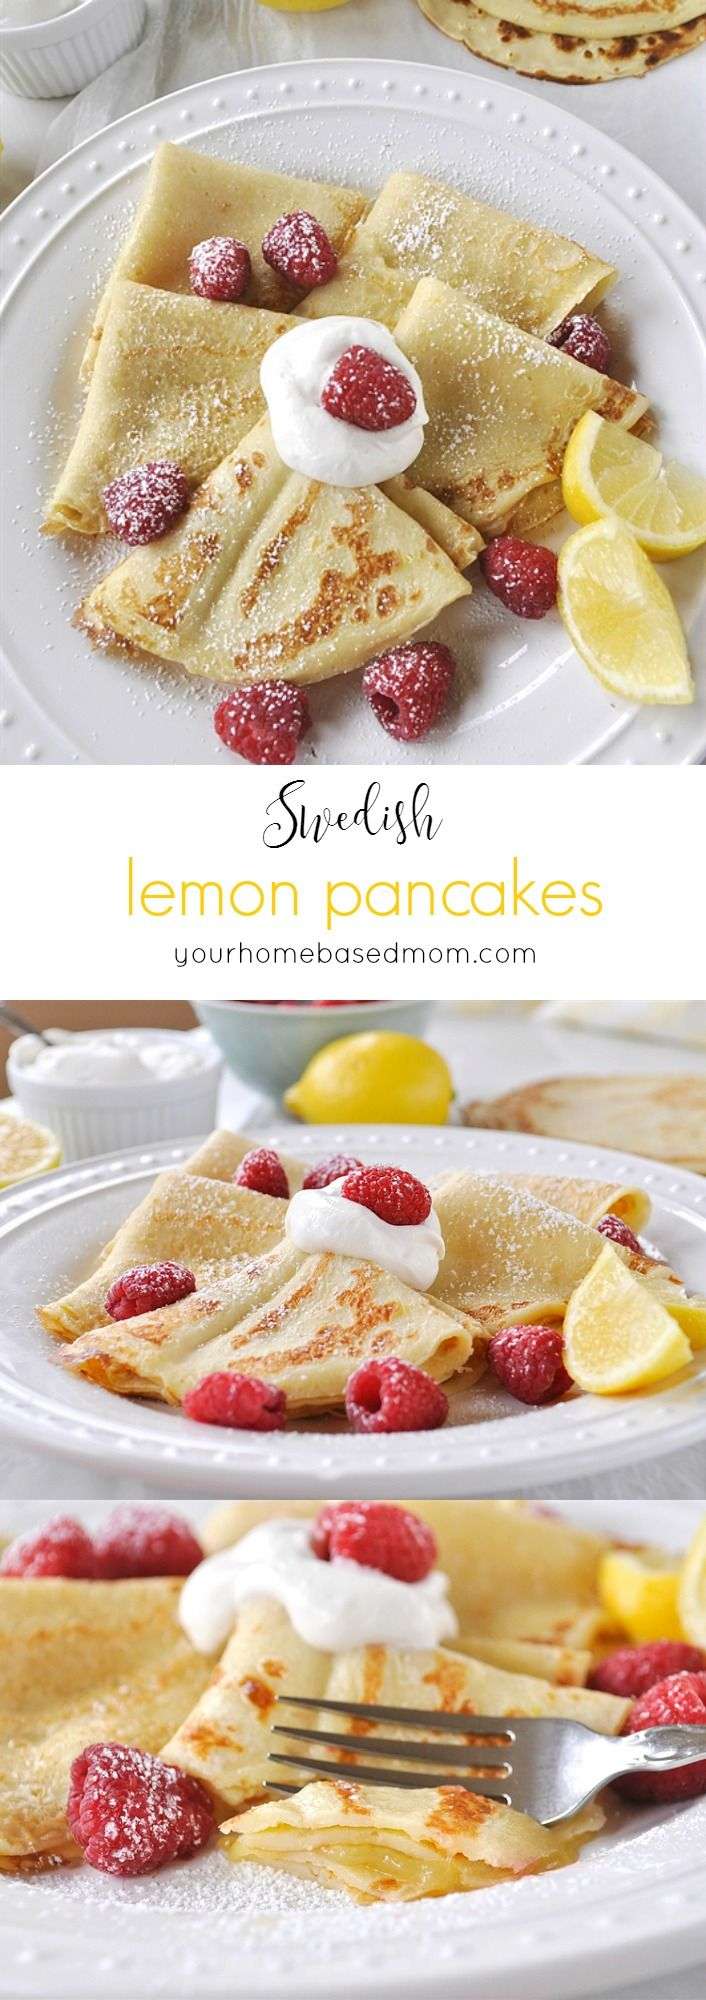 Swedish Lemon Pancakes recipes. Surprise your family with this fabulously spring breakfast recipe! yourhomebasedmom.com for thirtyhandmadedays.com